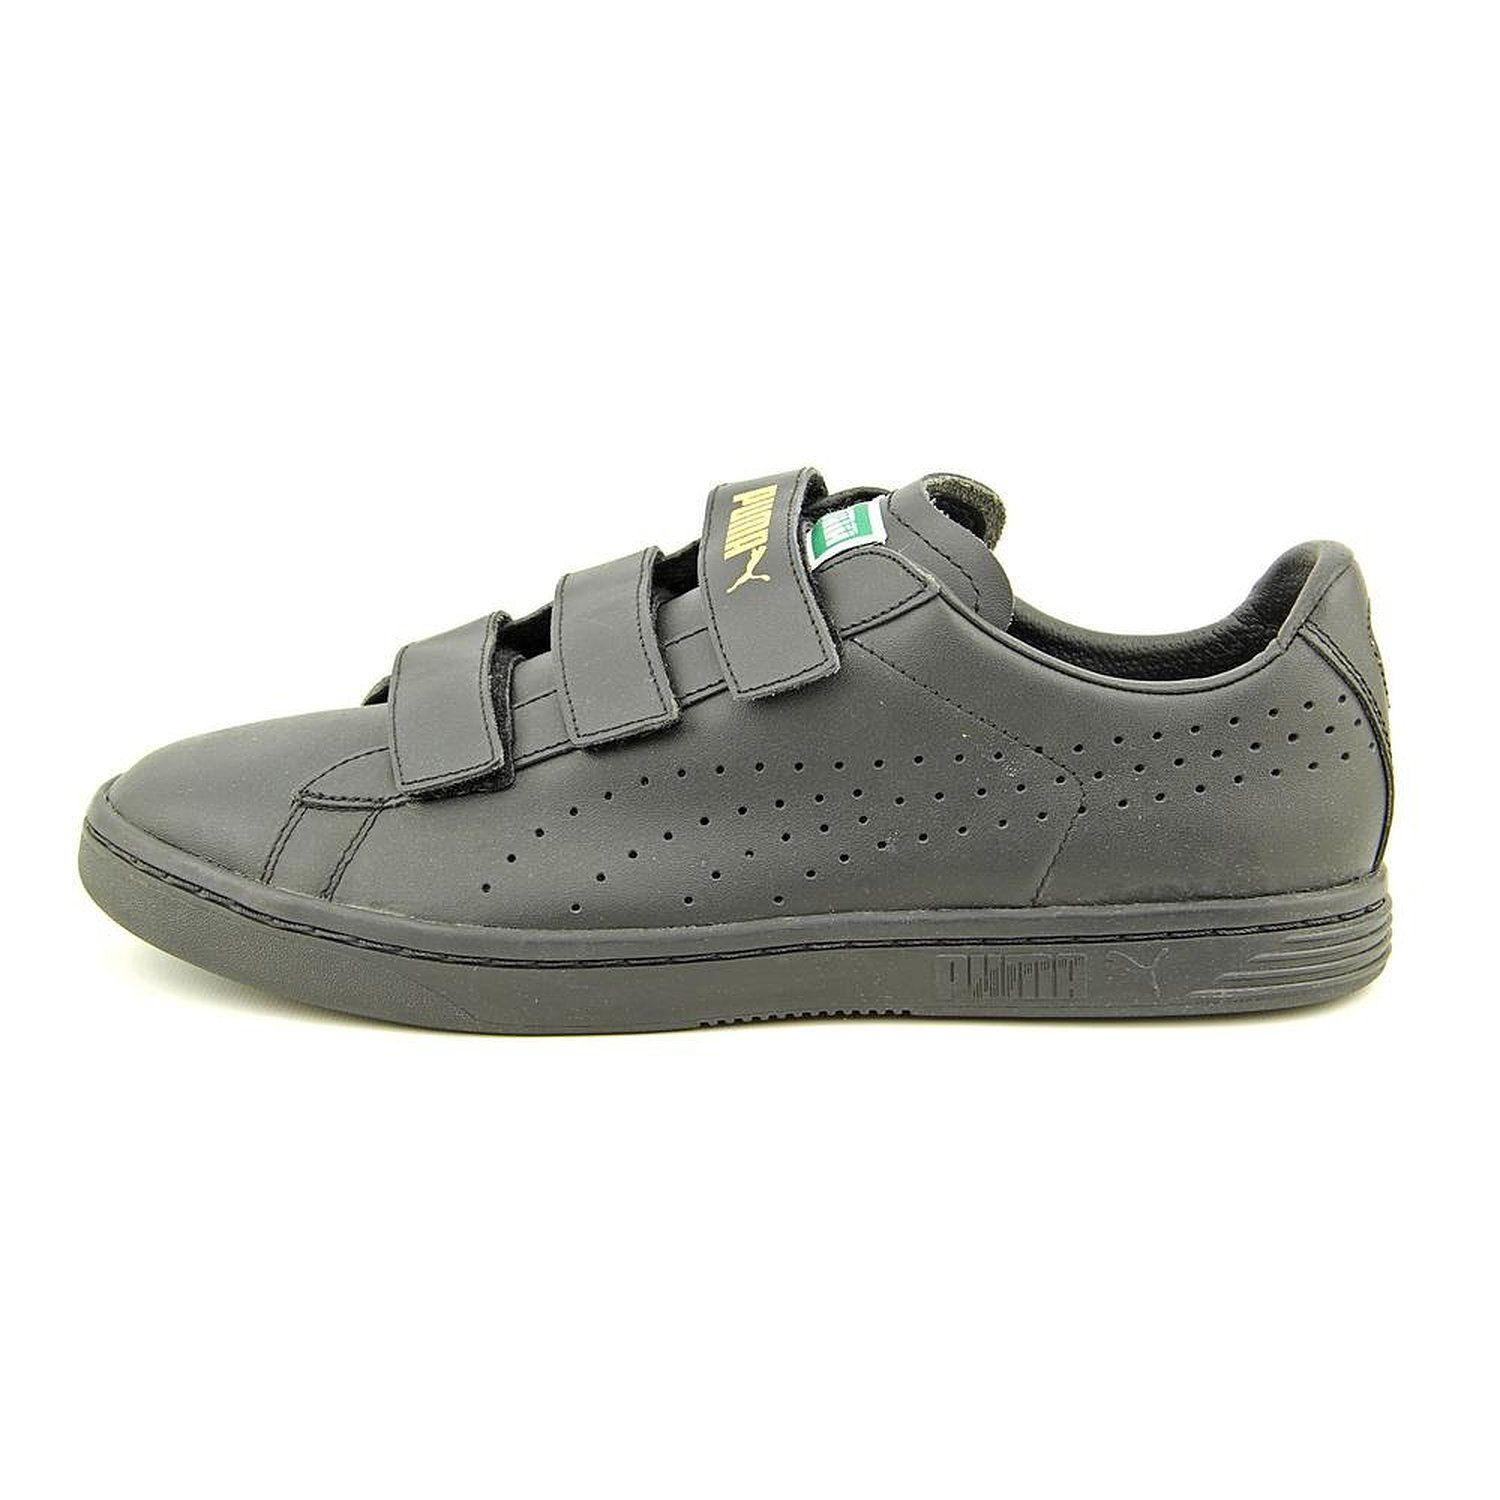 official photos e17c0 08dc1 Puma Court Star Velcro Mens Size 10 Black Leather Sneakers ...